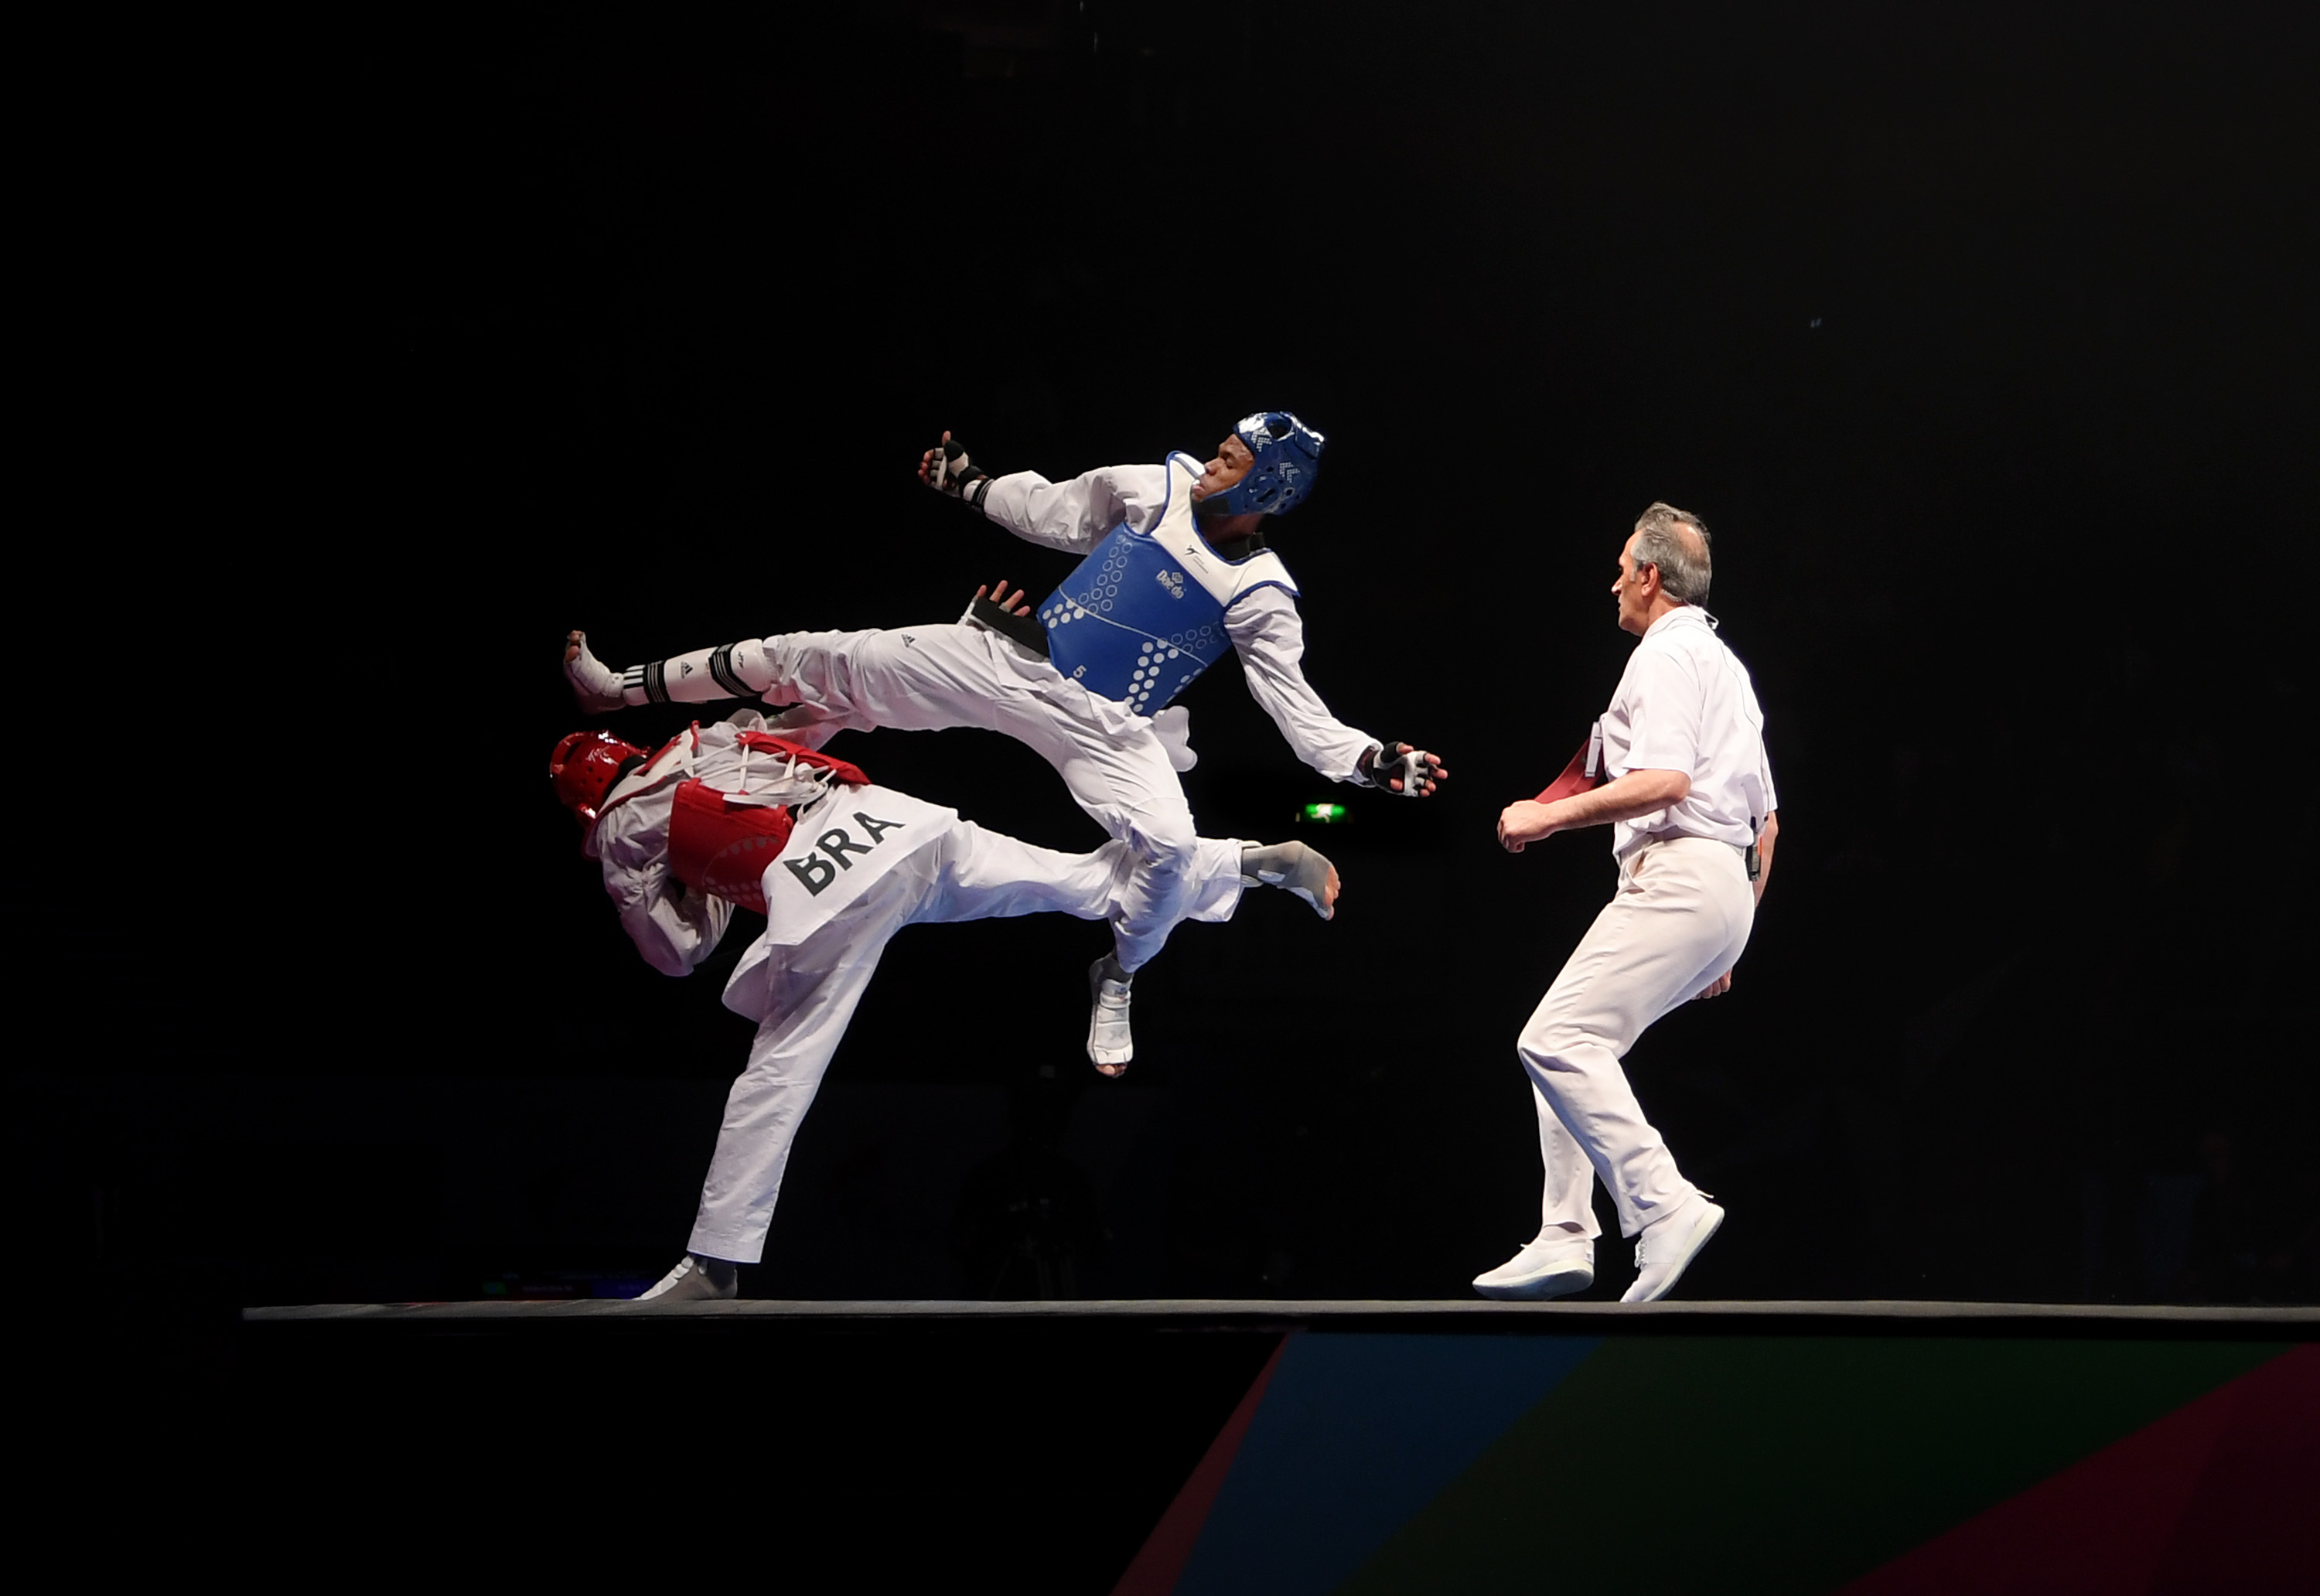 Rafael Alba of Cuba competes against of Maicon Siquera of Brazil in the Semi Final of the Mens +87kg during Day 5 of the World Taekwondo Championships at Manchester Arena .